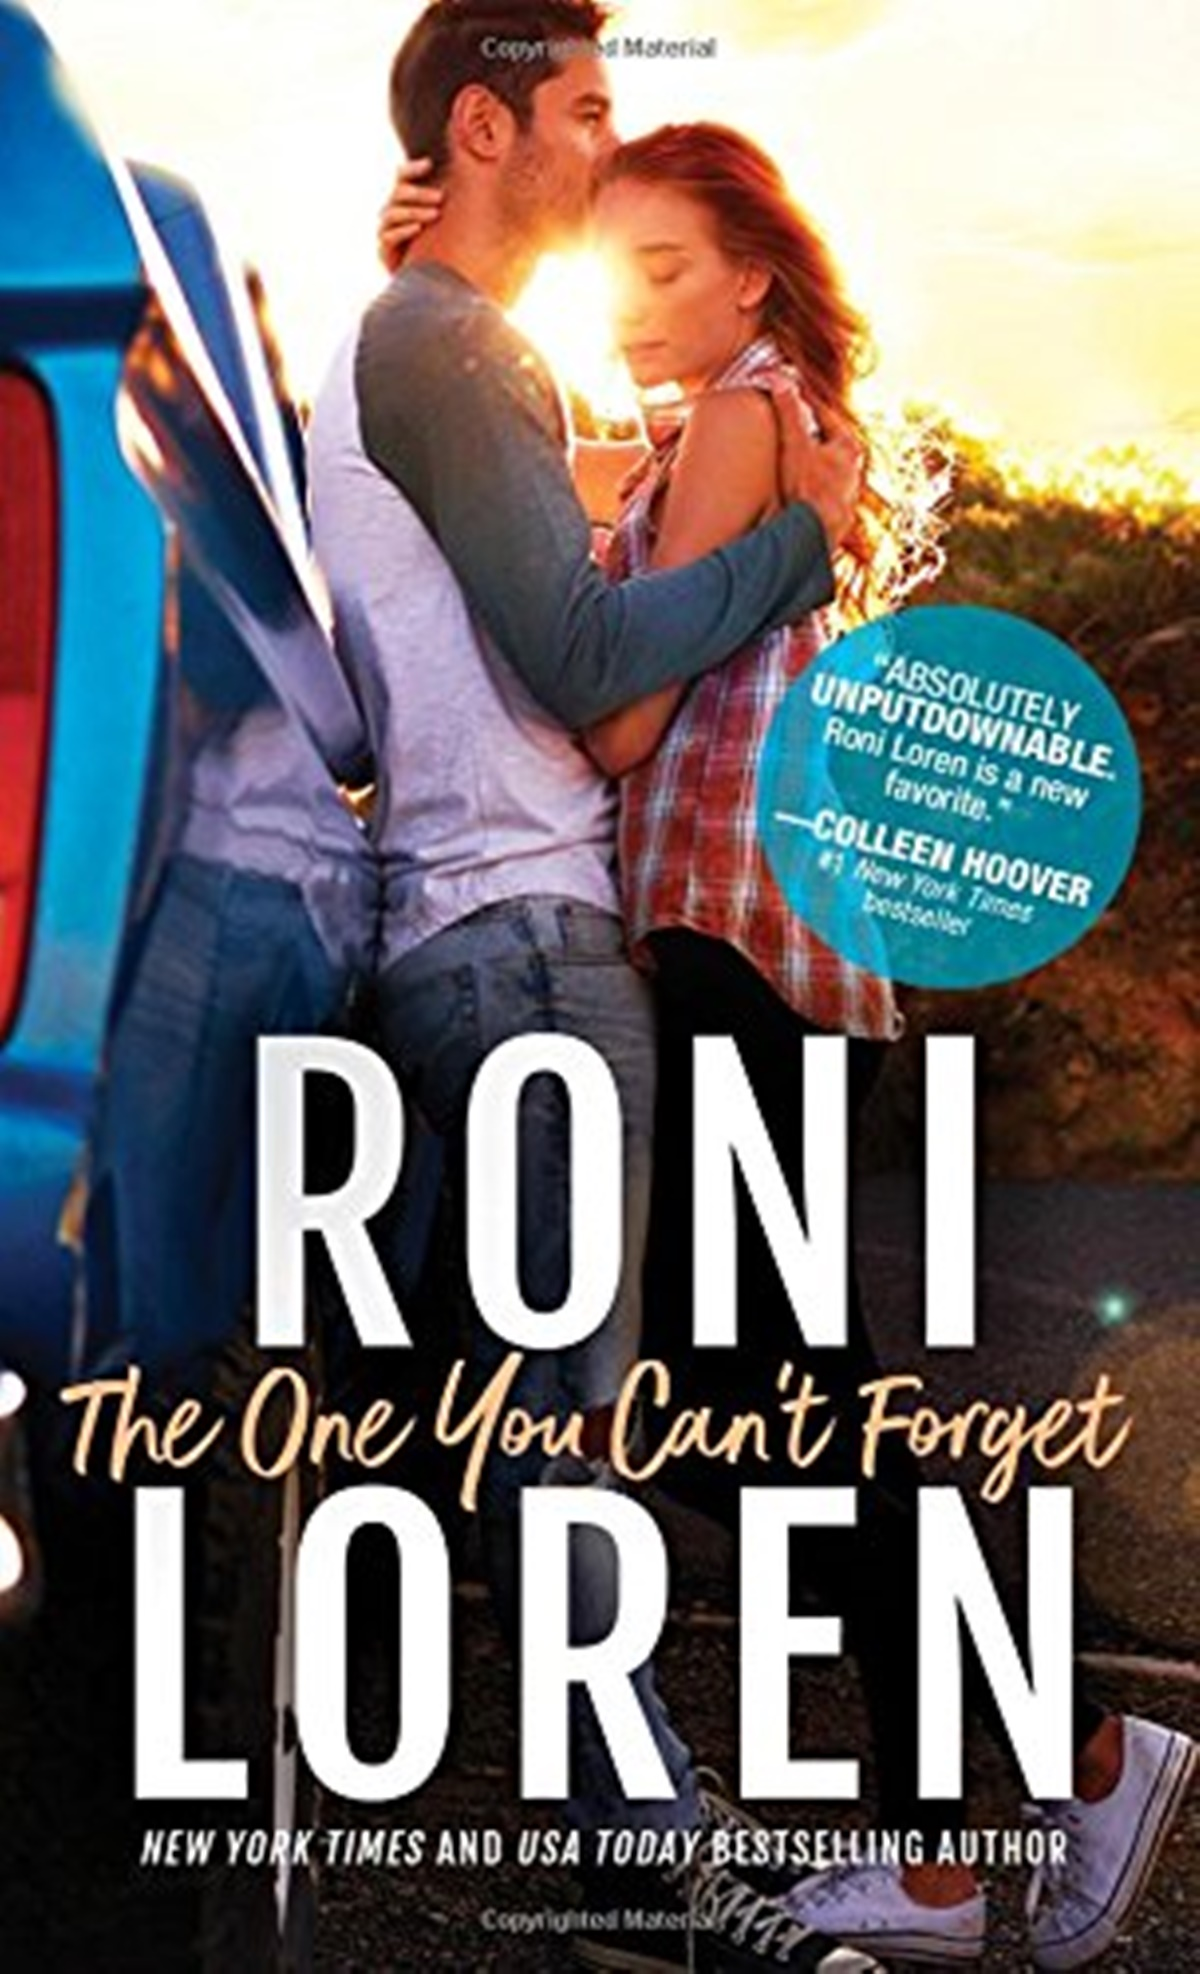 Summer Romance Reading List, book cover of The One You Can't Forget by Roni Loren, books